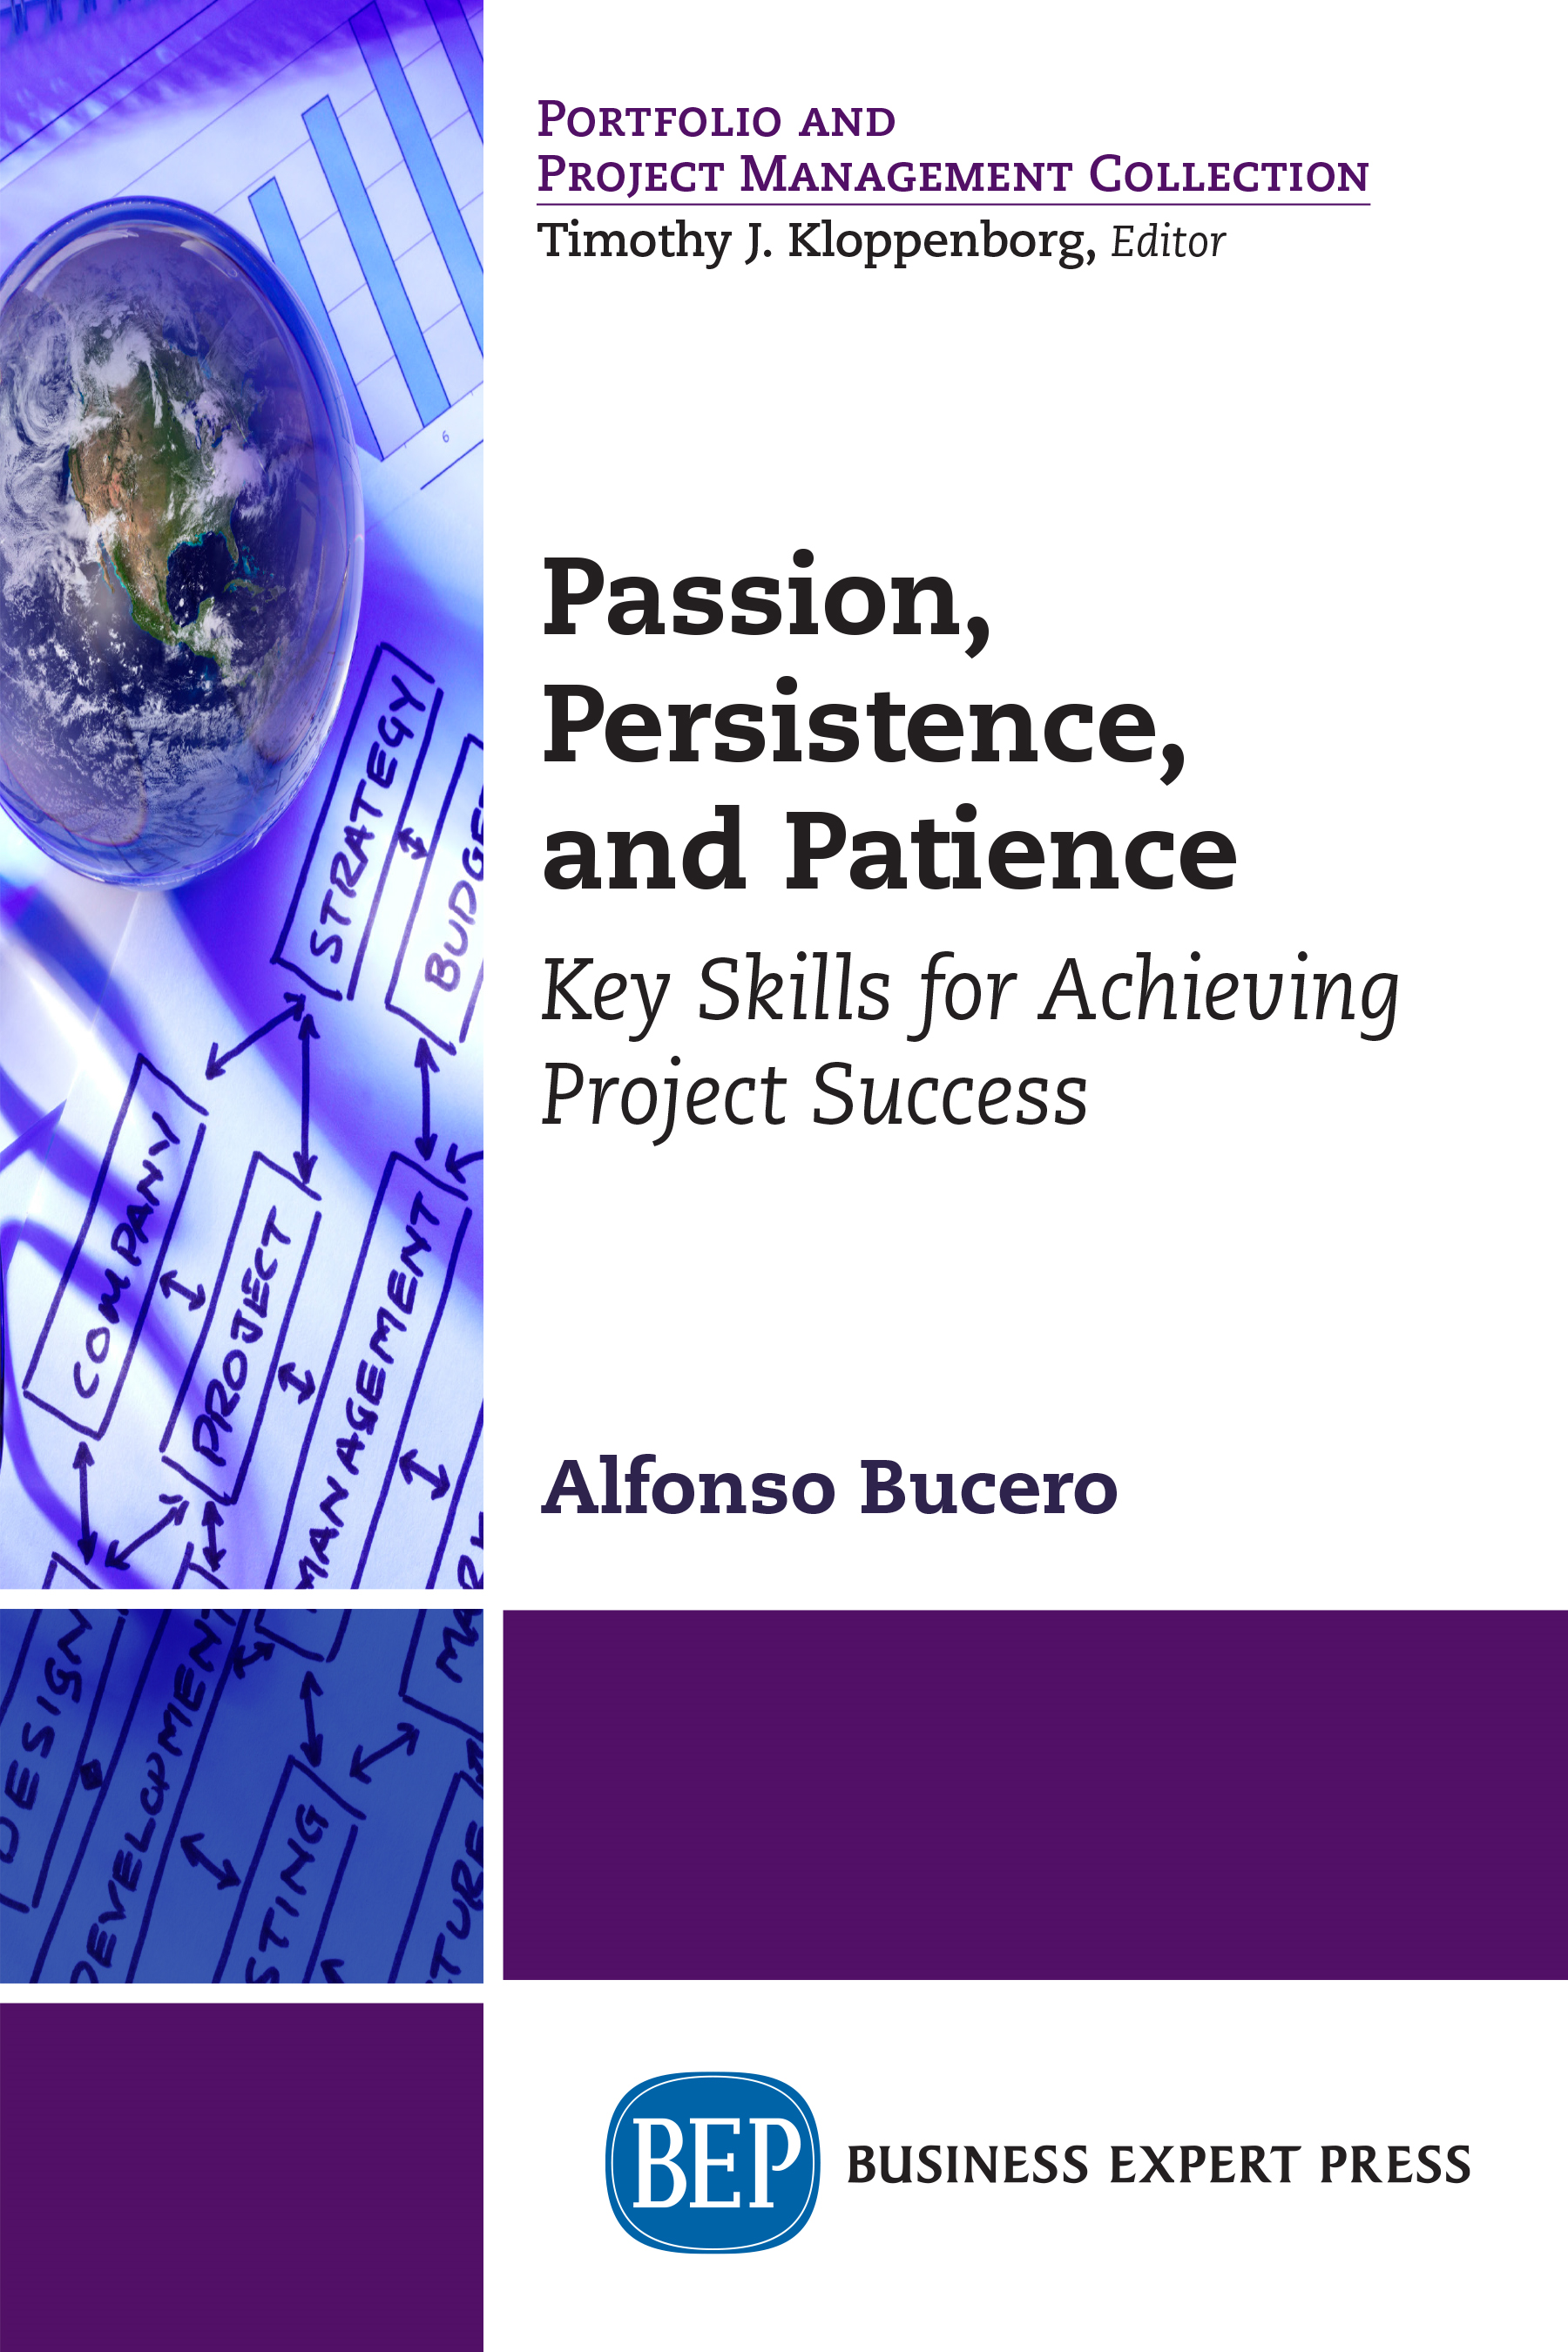 Project Management Serenity an asset to effective results   Bucero